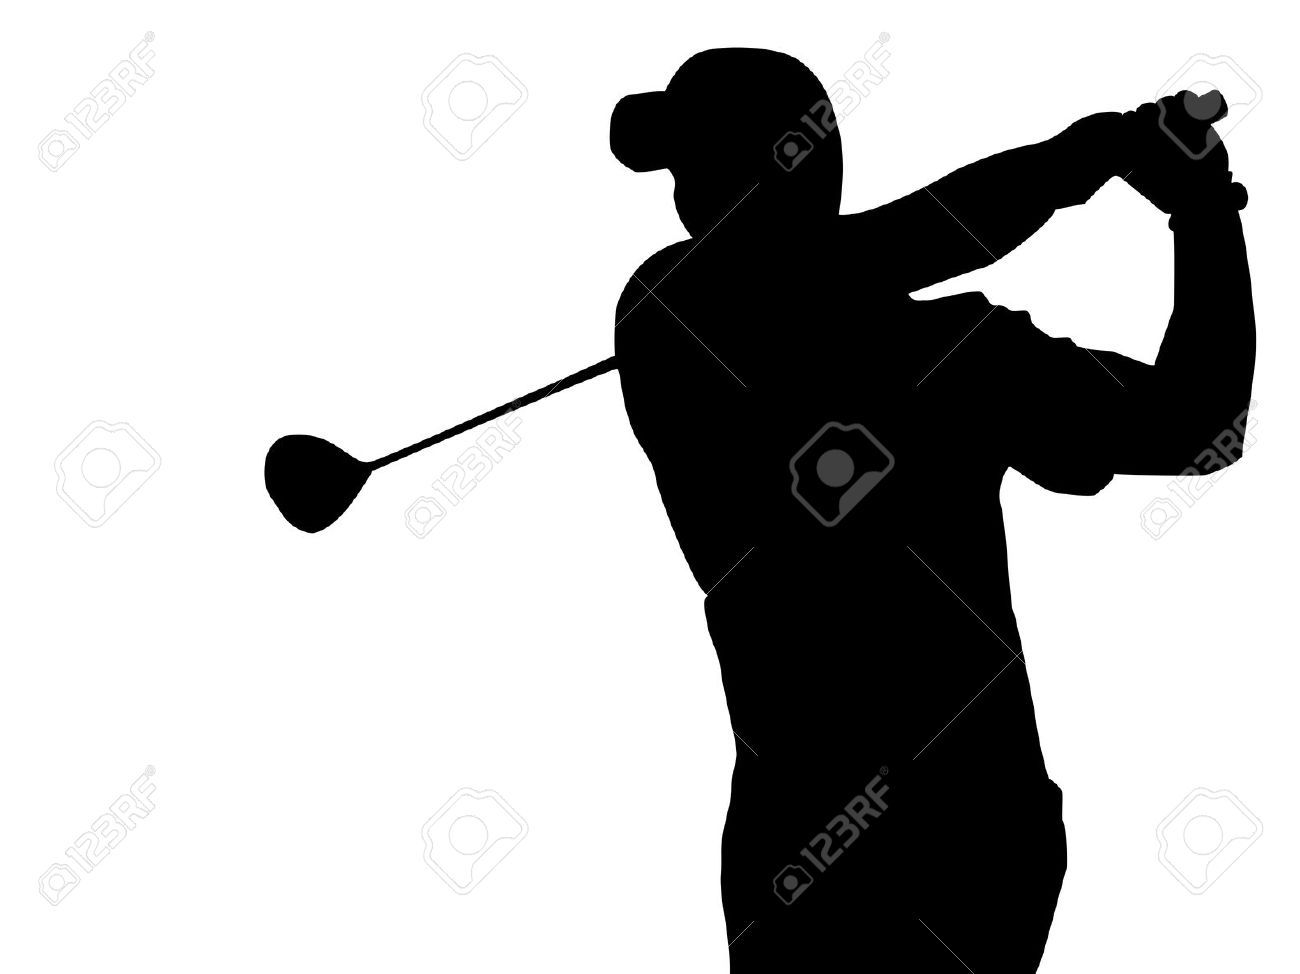 Pin By Linda Hawlik On Characters Pinterest Golf Silhouette And